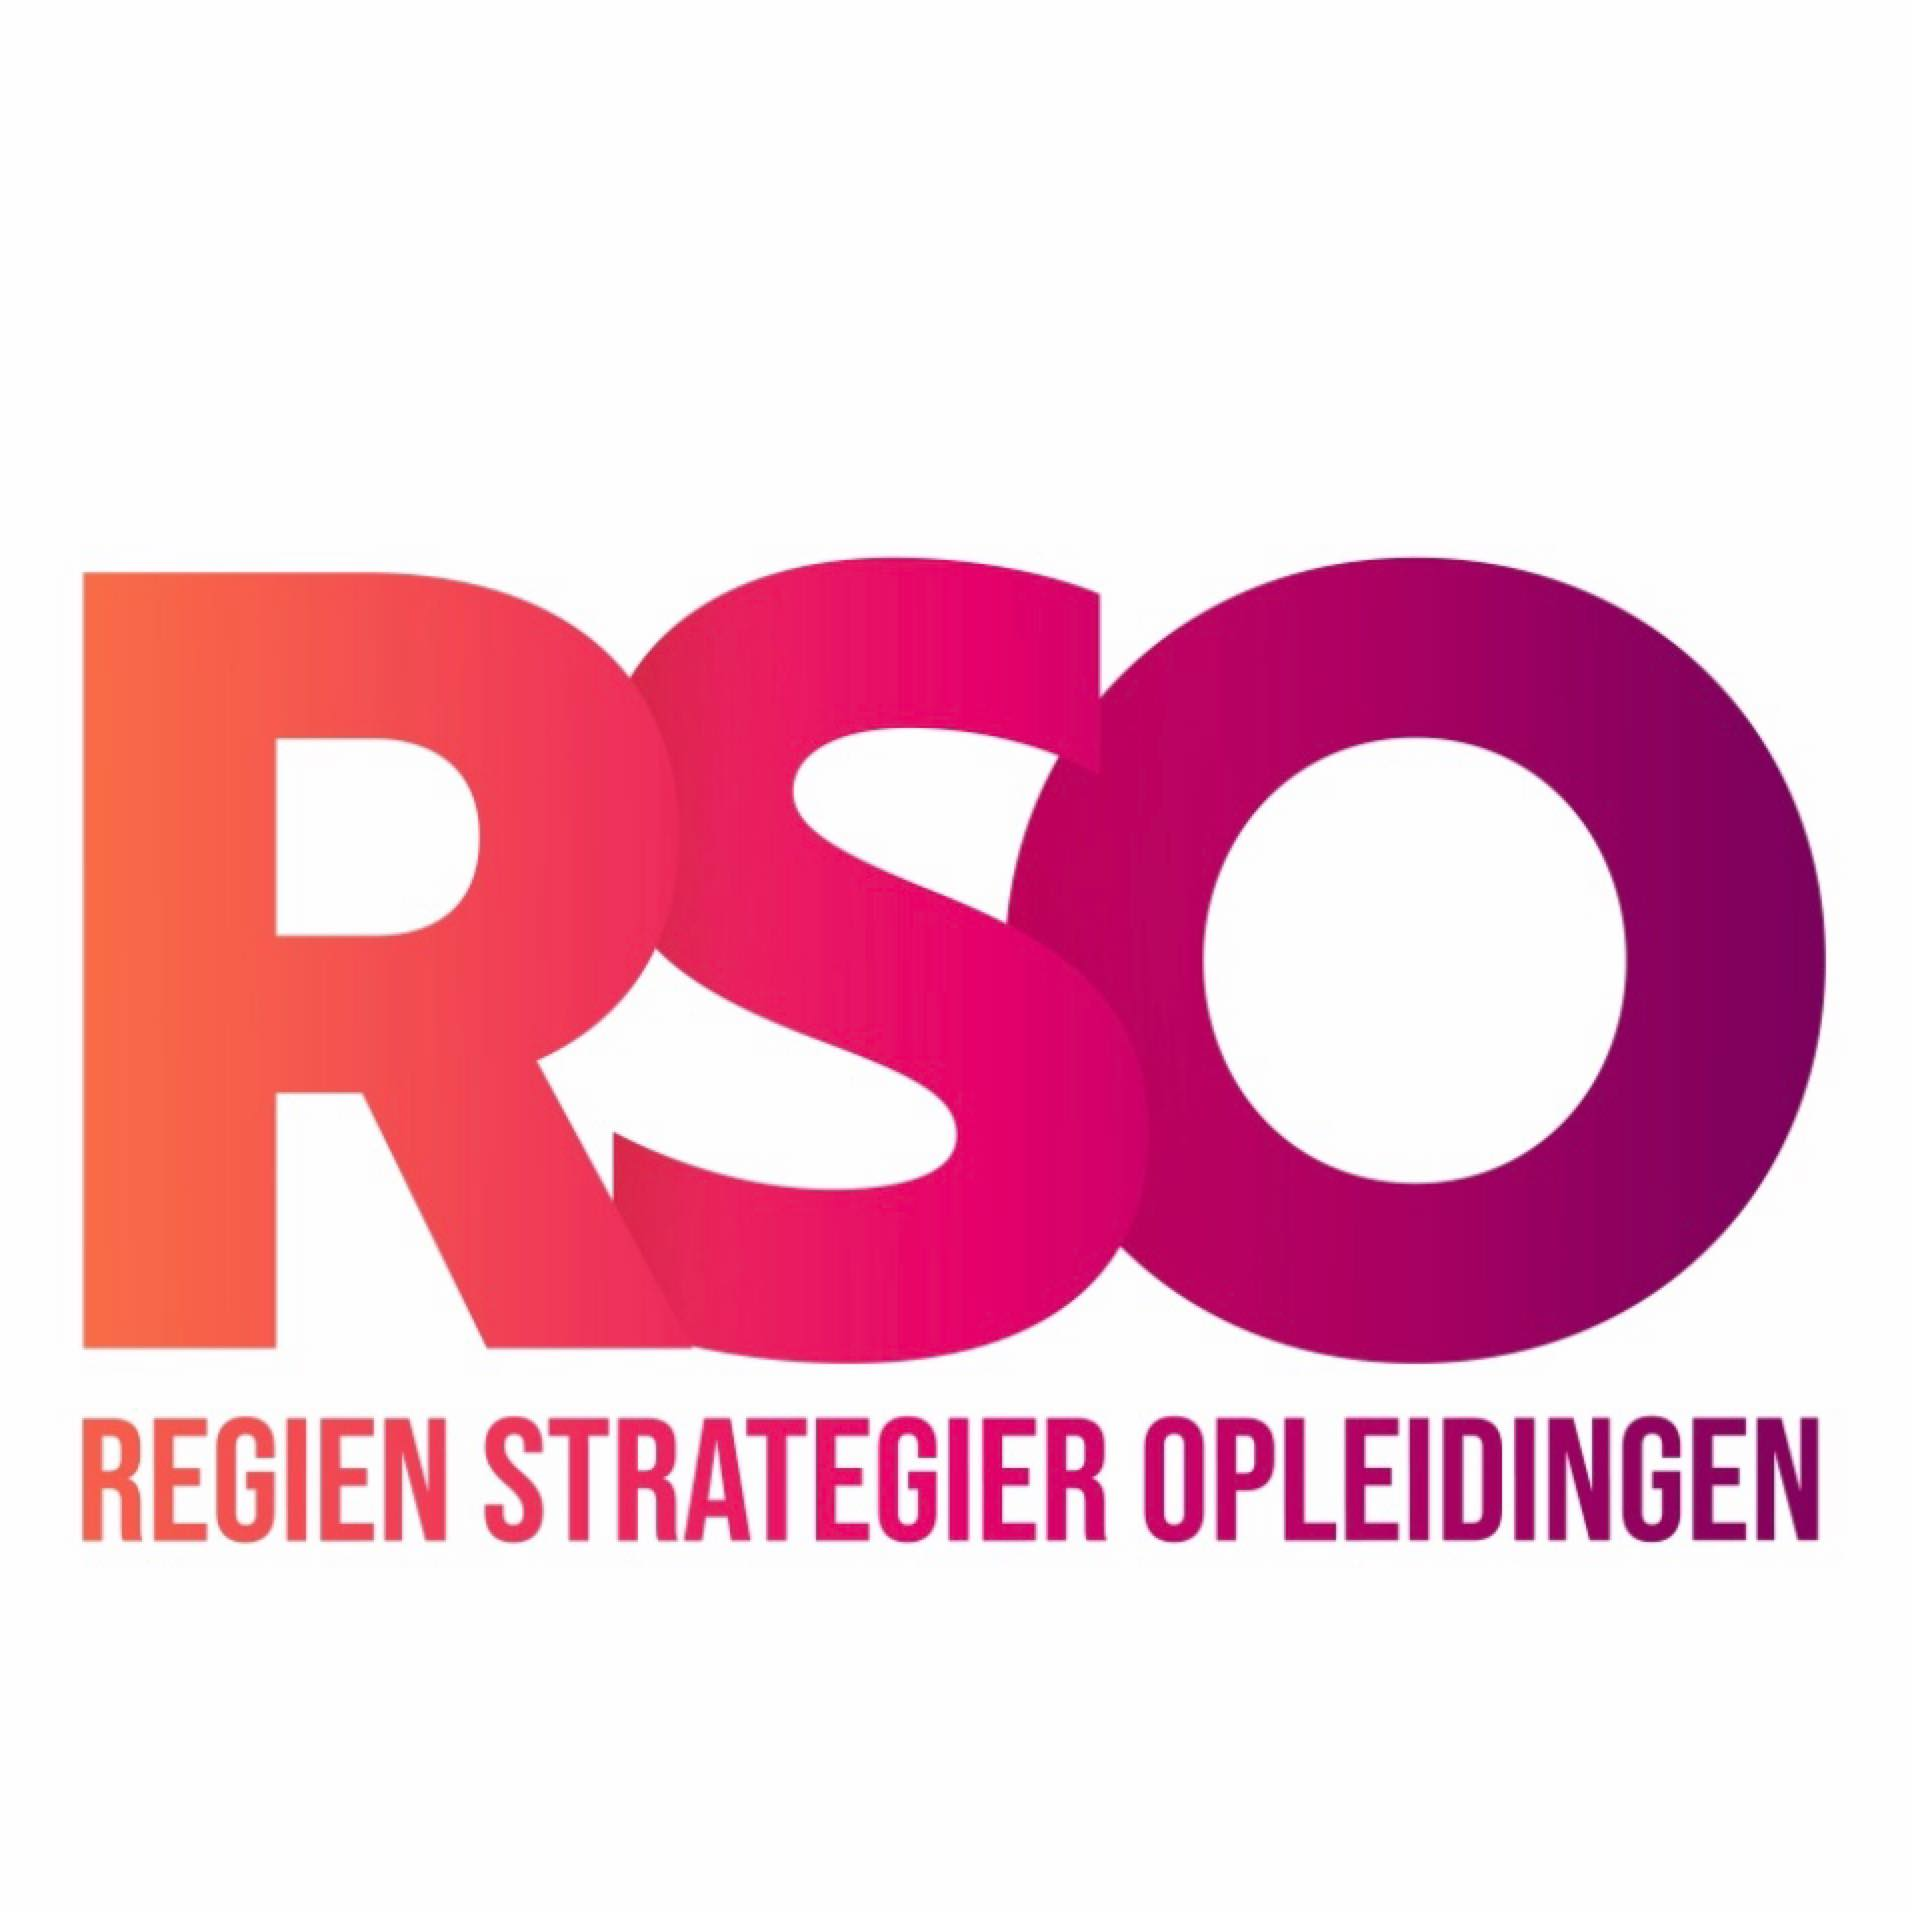 Regien Strategier Opleidingen